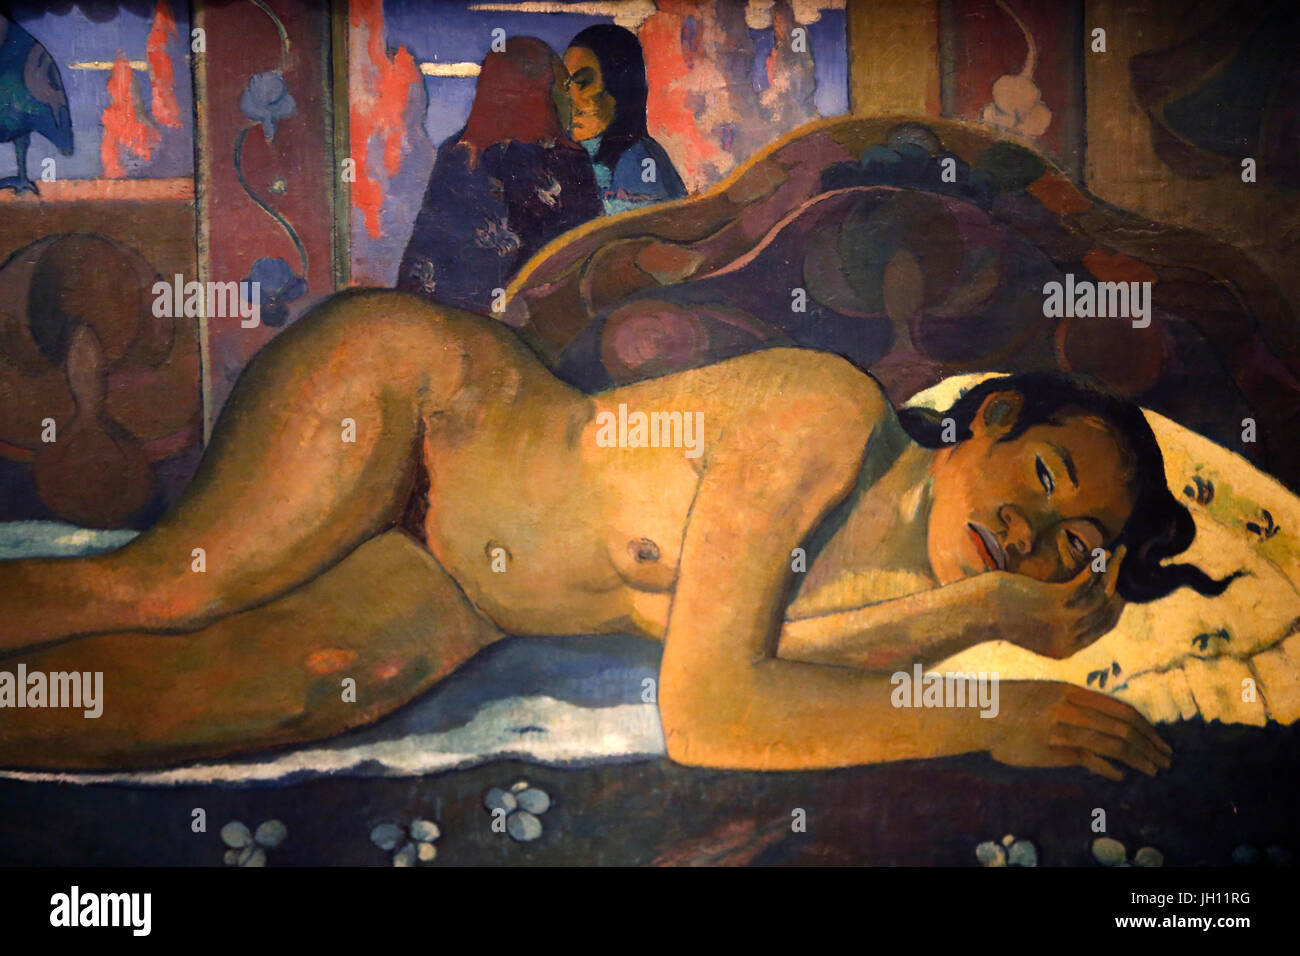 The Courtauld Gallery. Paul Gauguin. Nevermore. 1897. Oil on canvas. United kingdom. - Stock Image